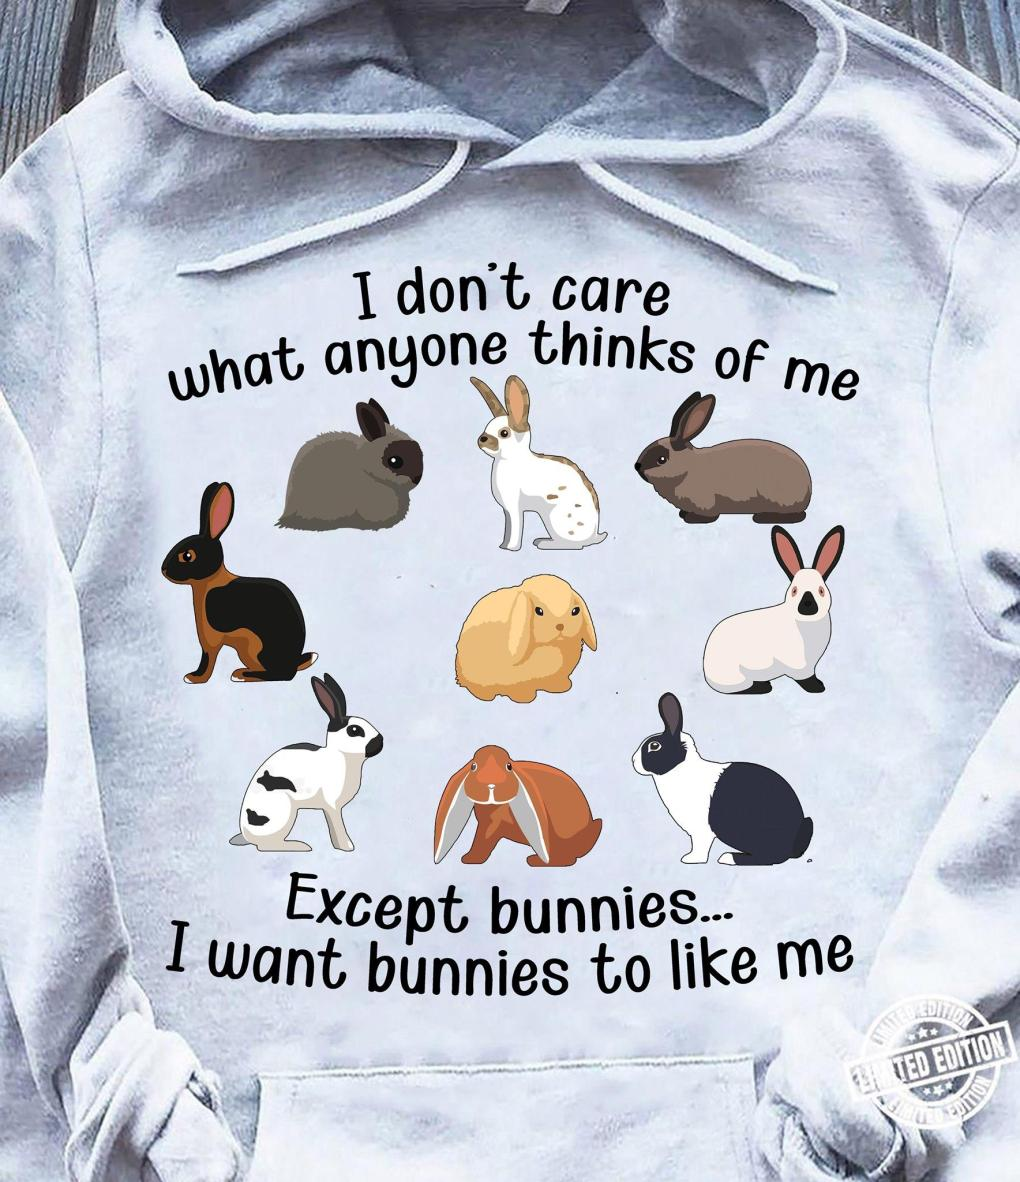 I Want Bunnies To Like Me Shirt